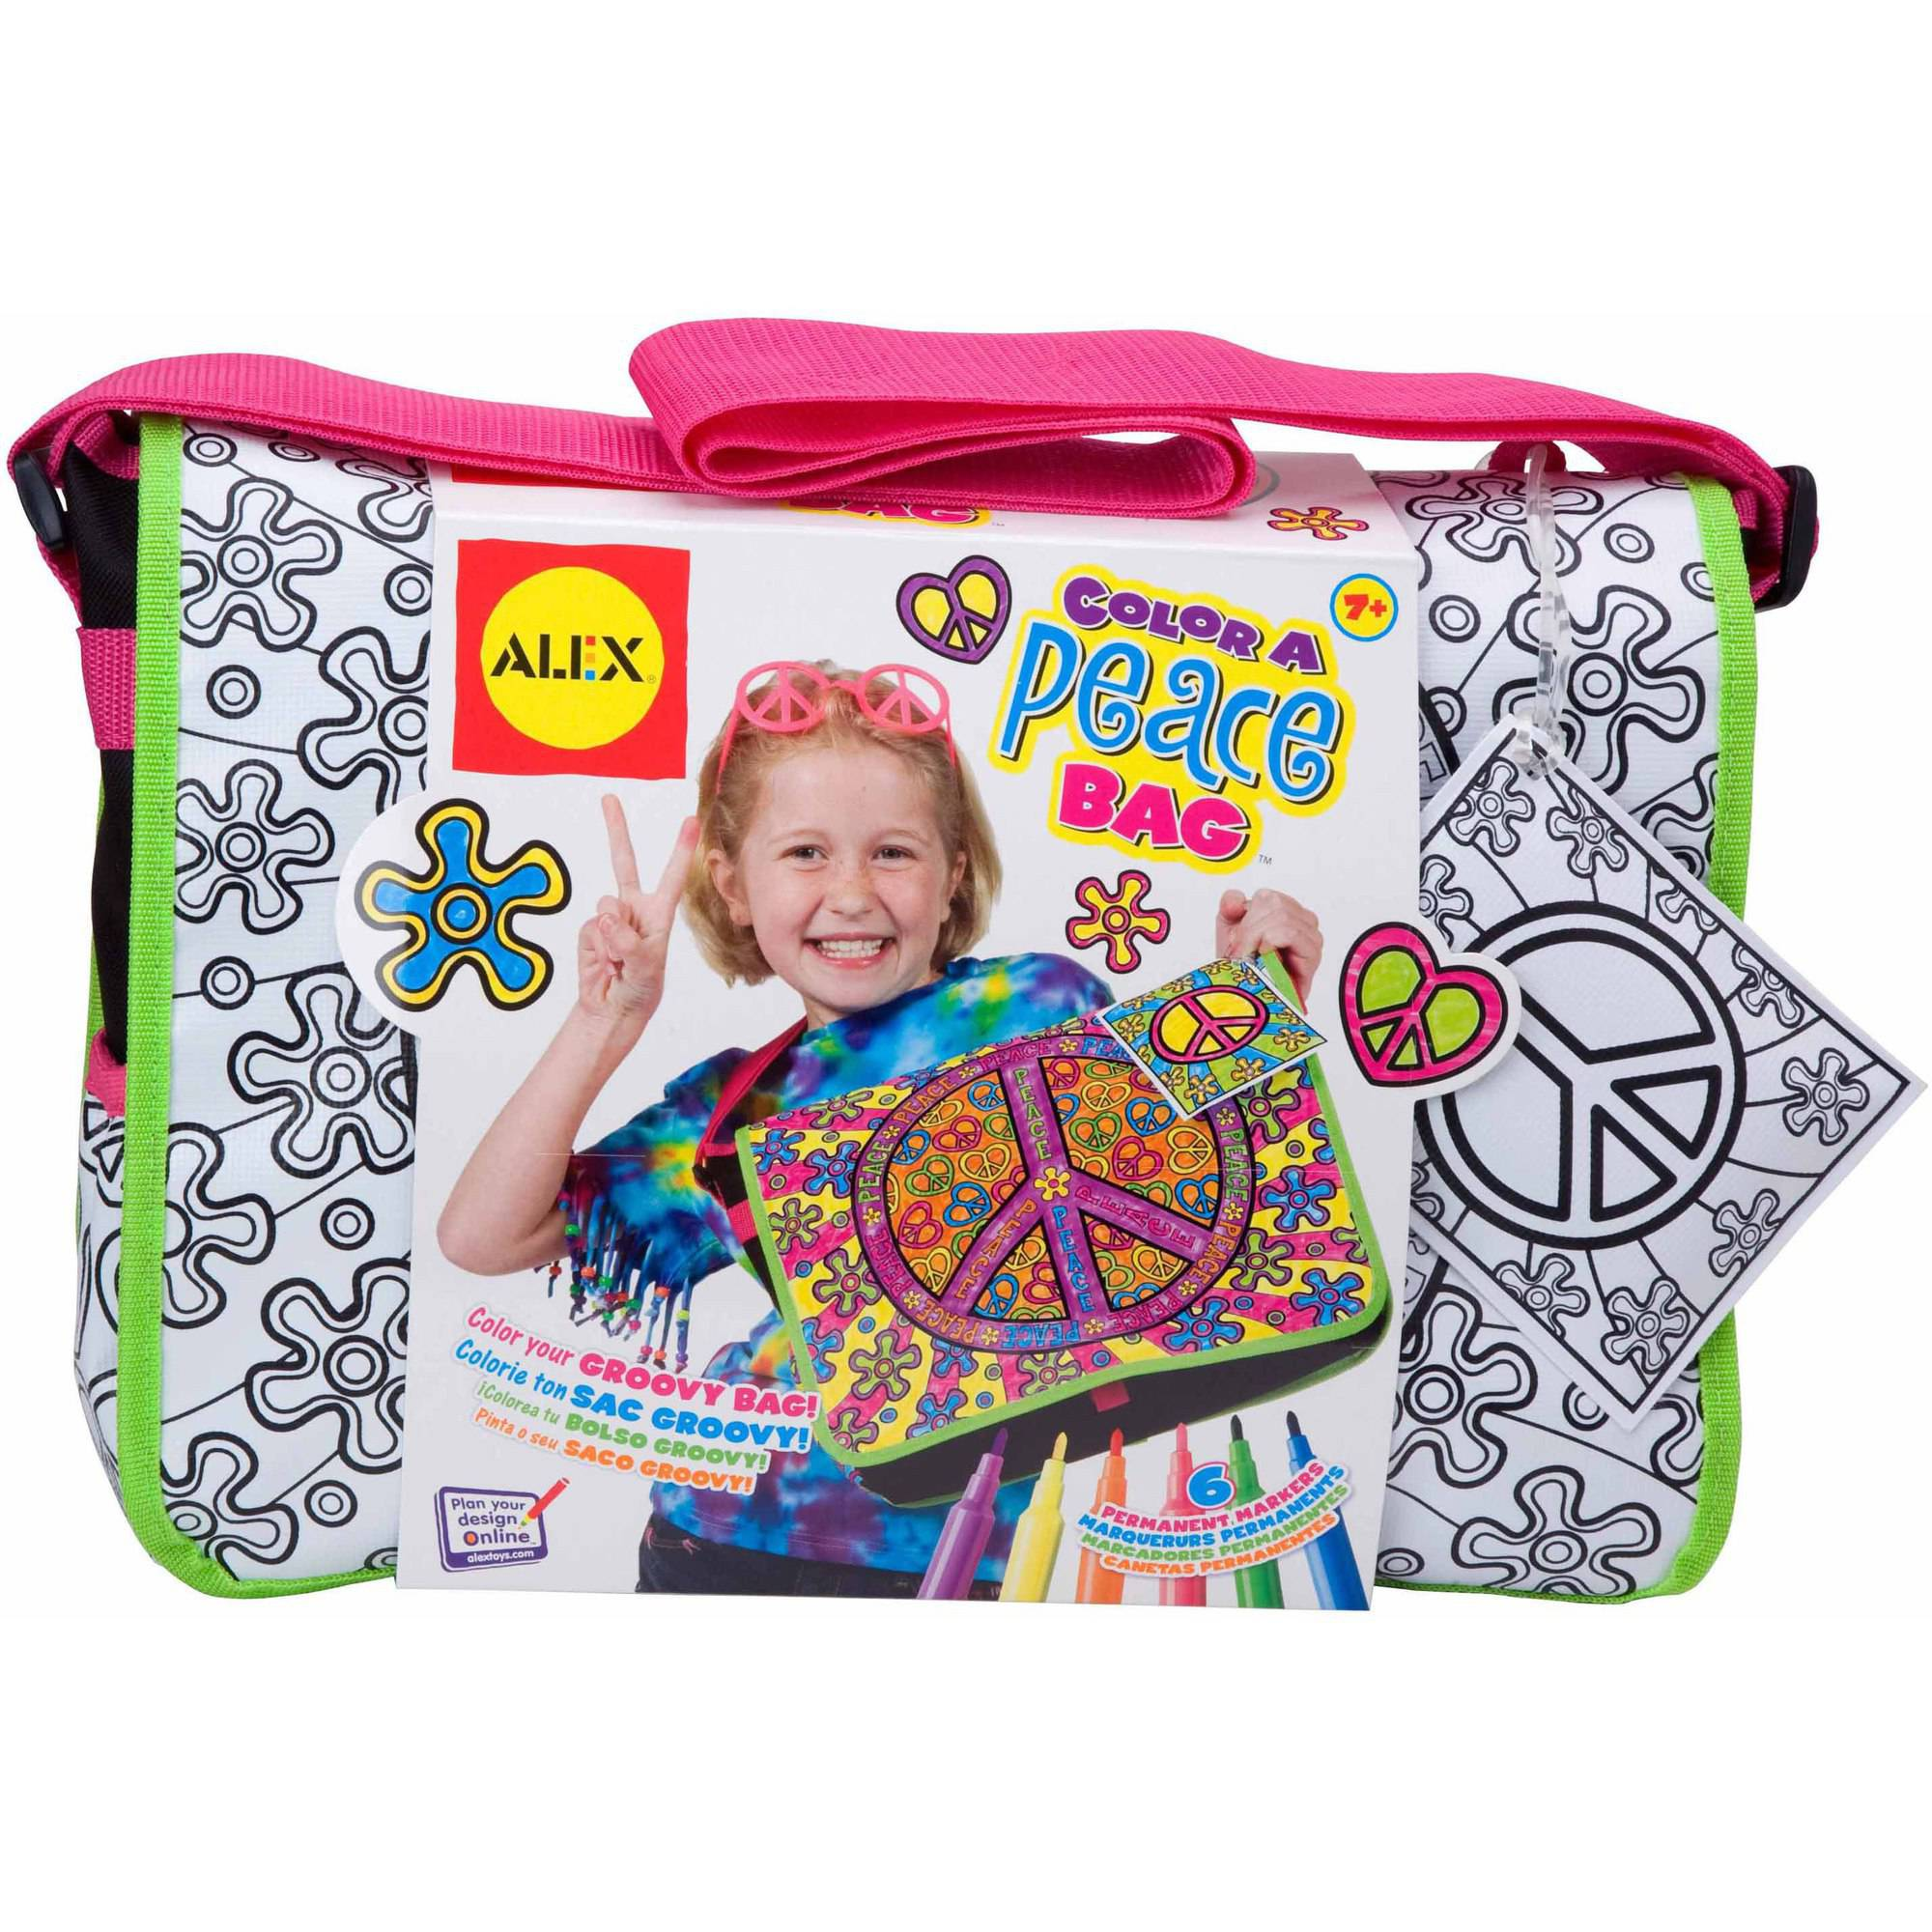 ALEX Toys Craft Color A Peace Bag